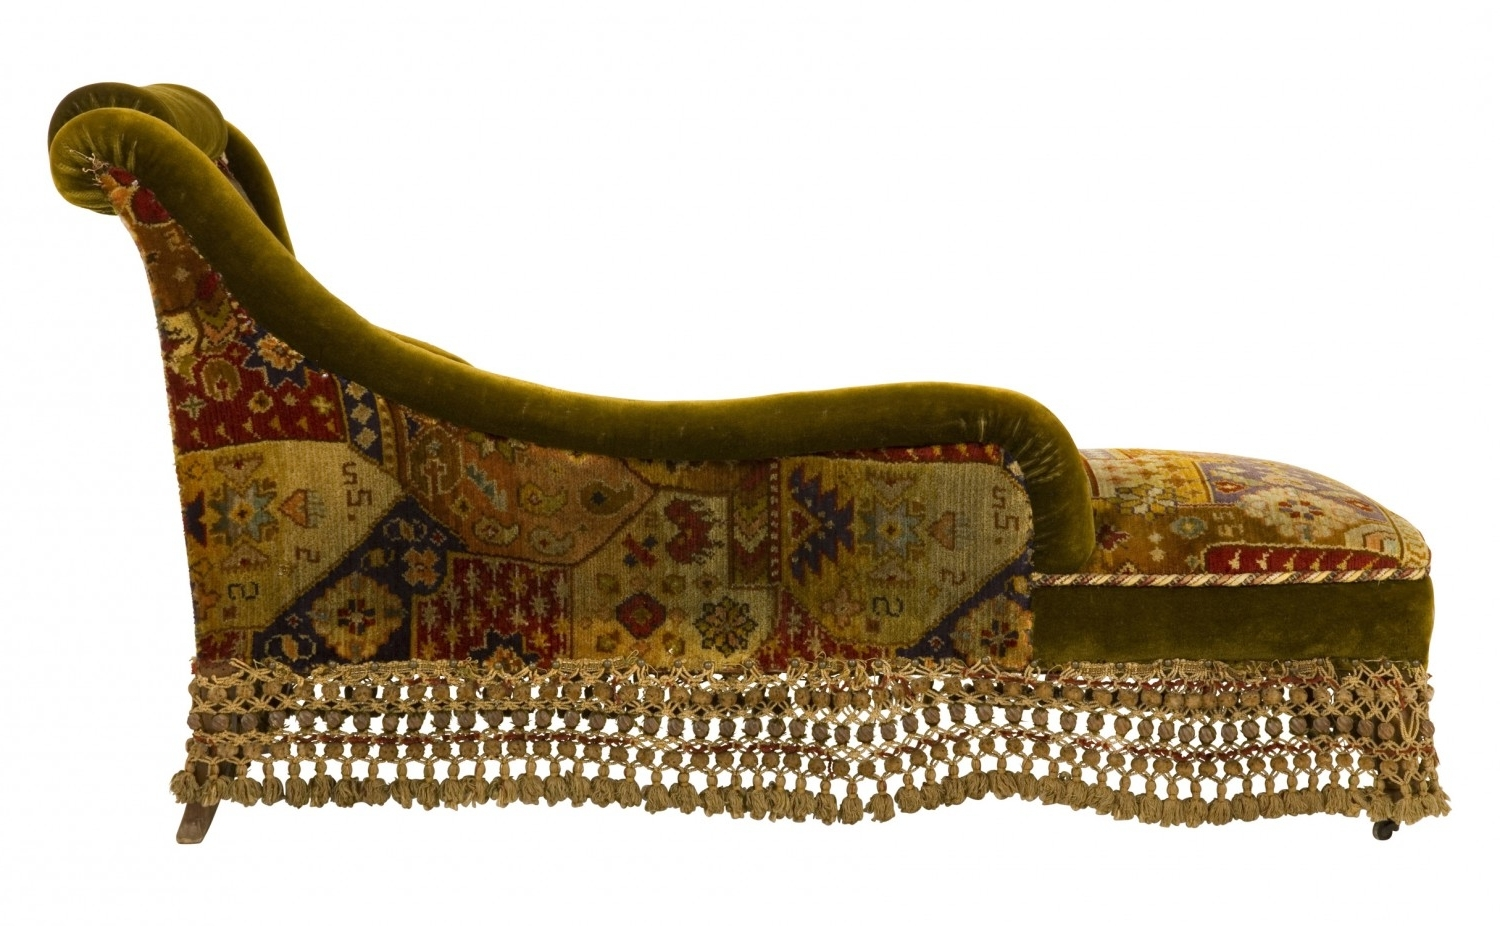 Antique Chaise Lounge (View 2 of 15)